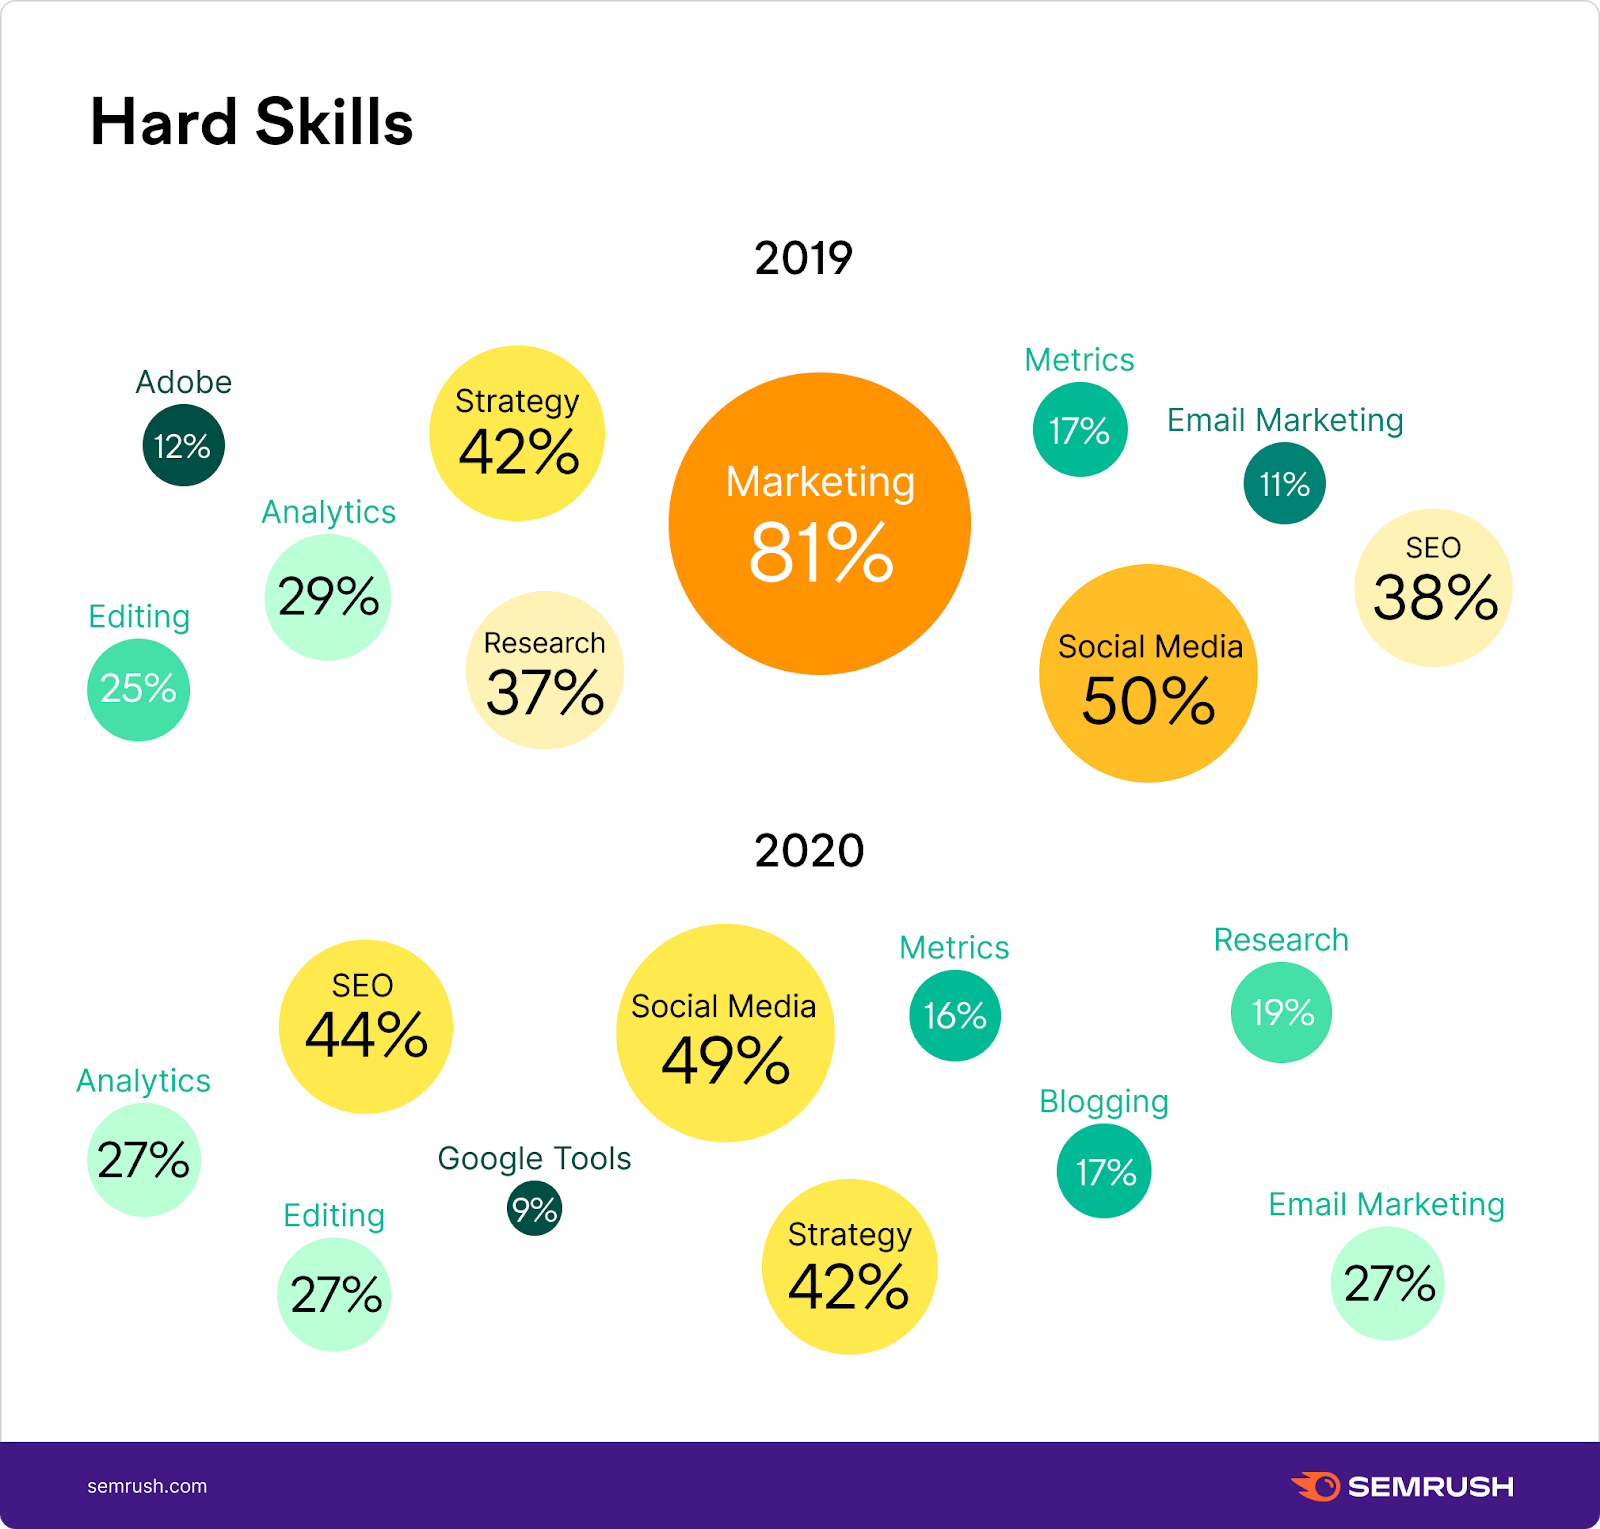 Top content marketer's hard skills